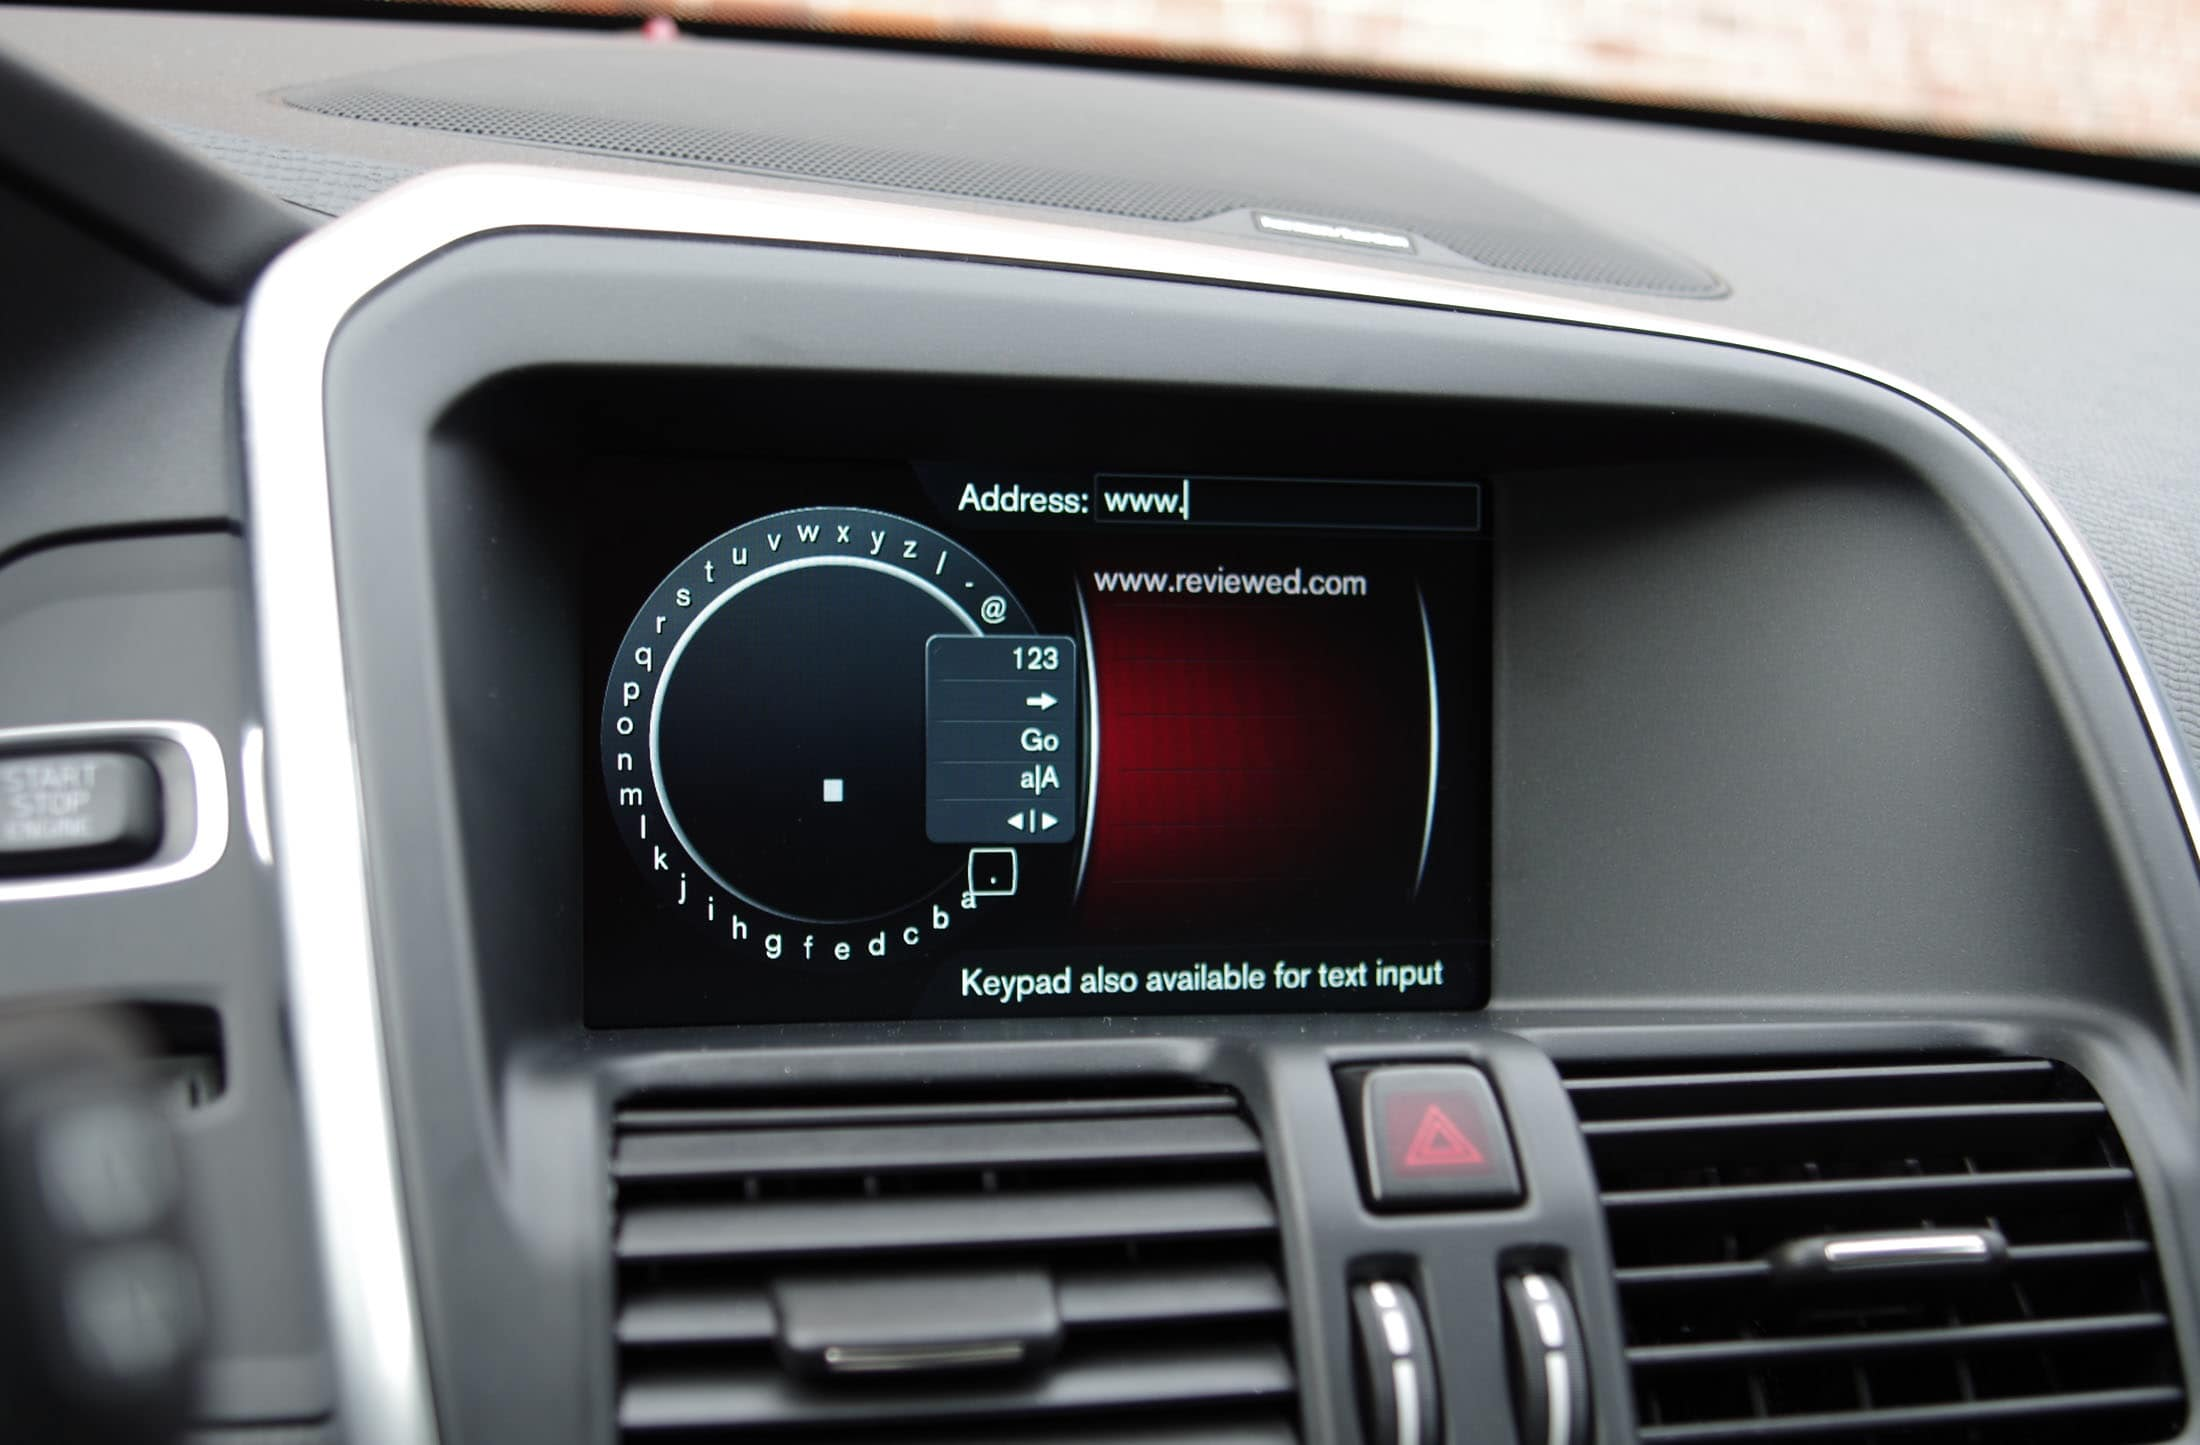 xc60 text entry